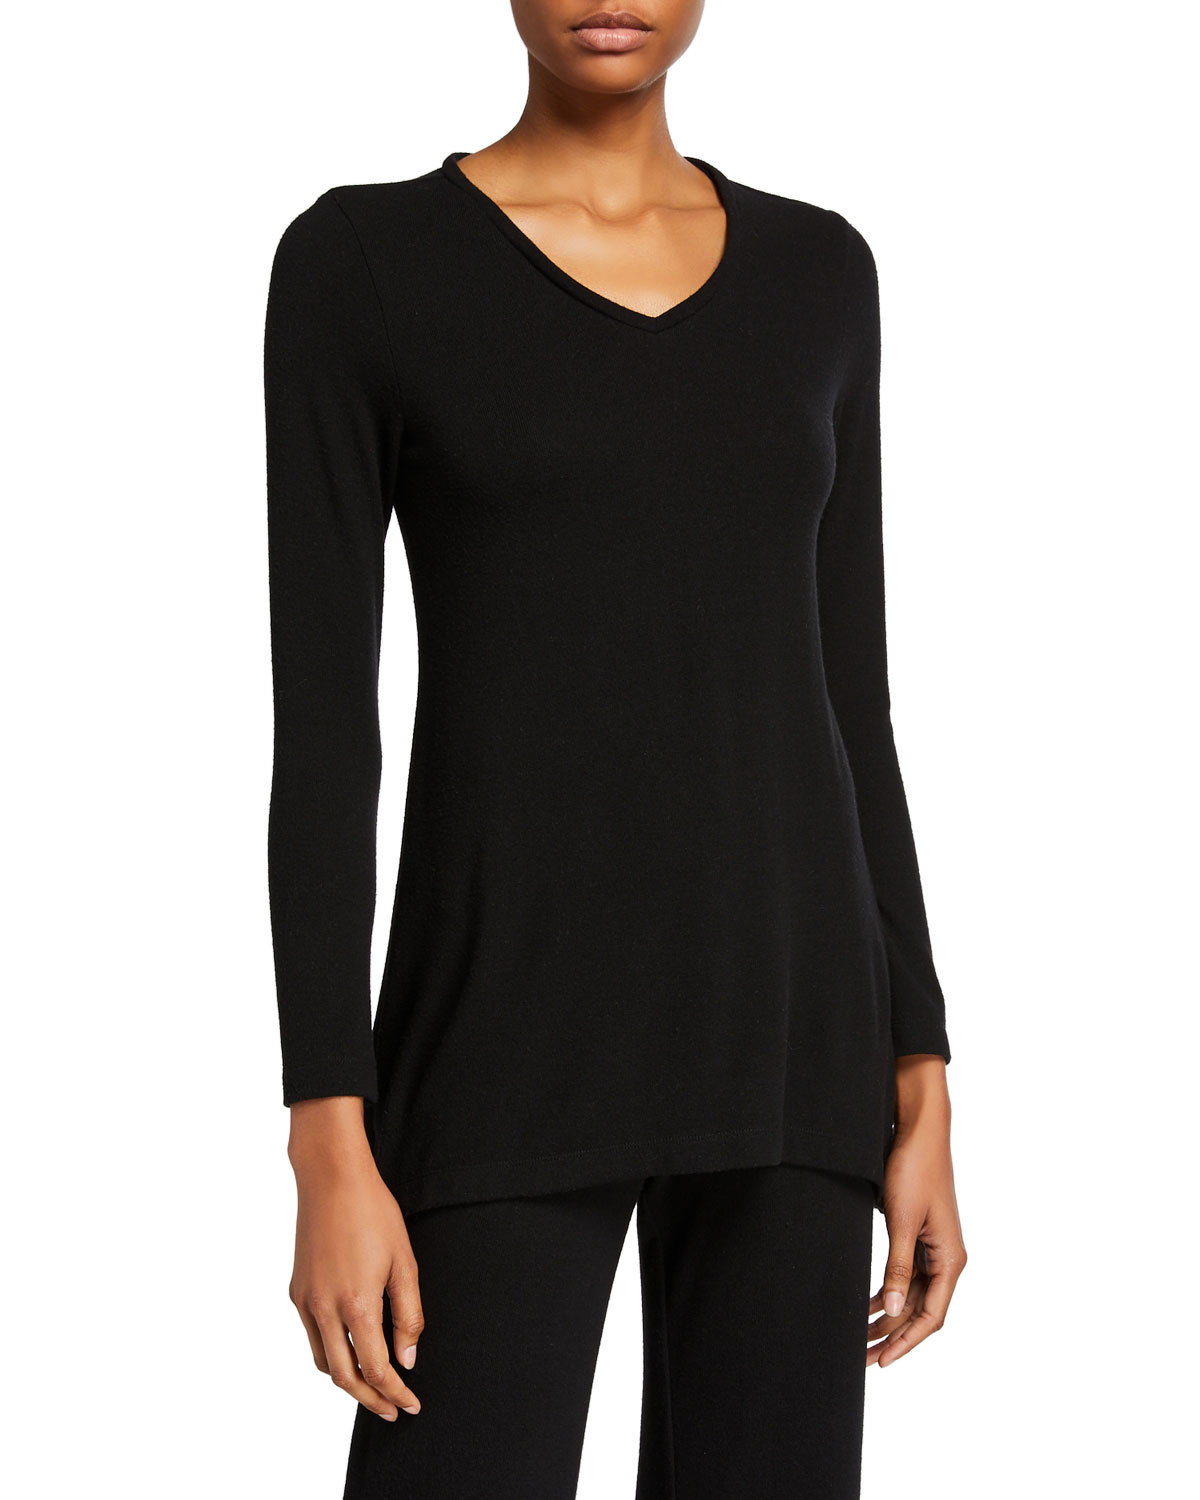 Natori Knitwear KAIA V-NECK KNIT TUNIC